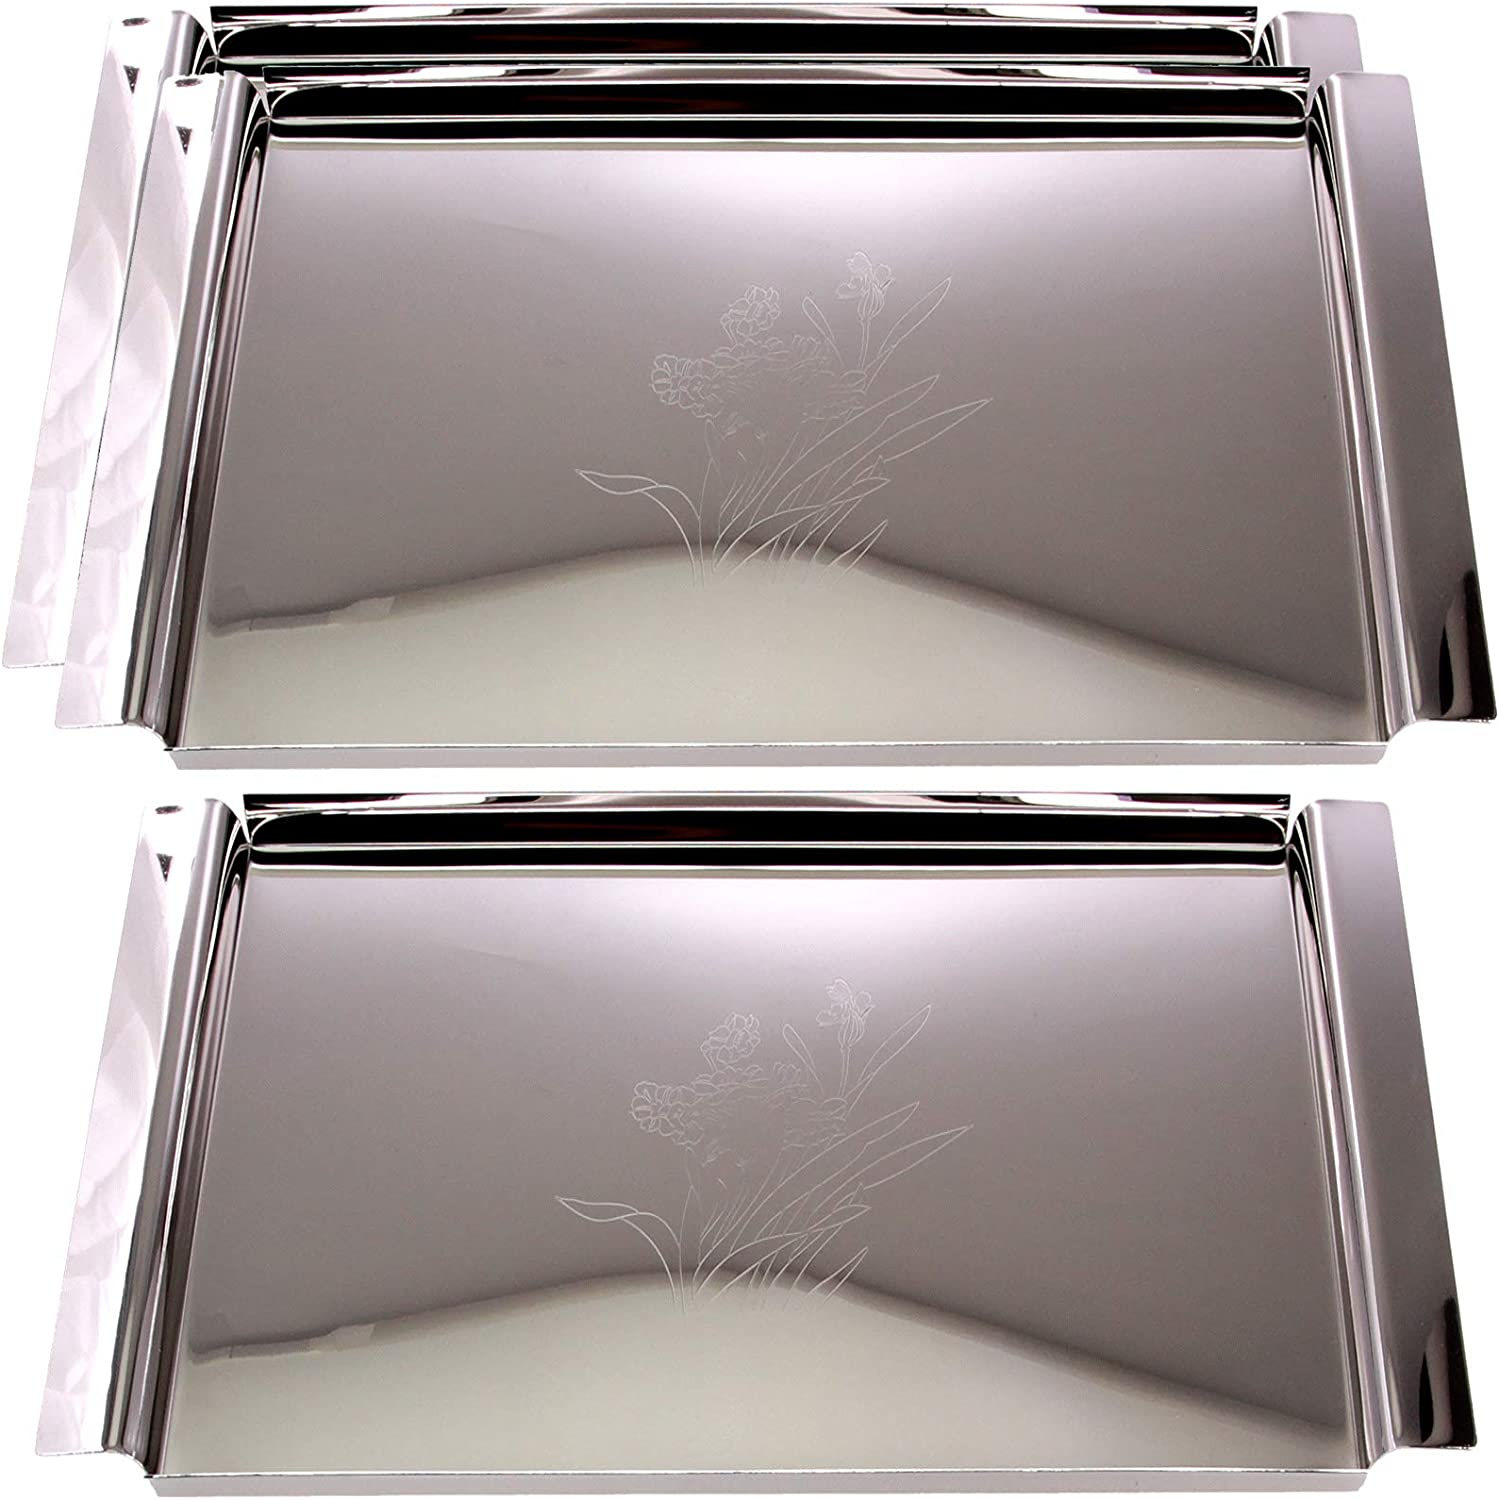 Maro Megastore (Pack of 3) 16.3 Inch x 9.3 Inch Rectangular Chrome Plated Serving Tray with Handle Floral Engraved Vintage Classic Design Mirror Plate Platter Holiday Wedding Buffet Food Event CC-414